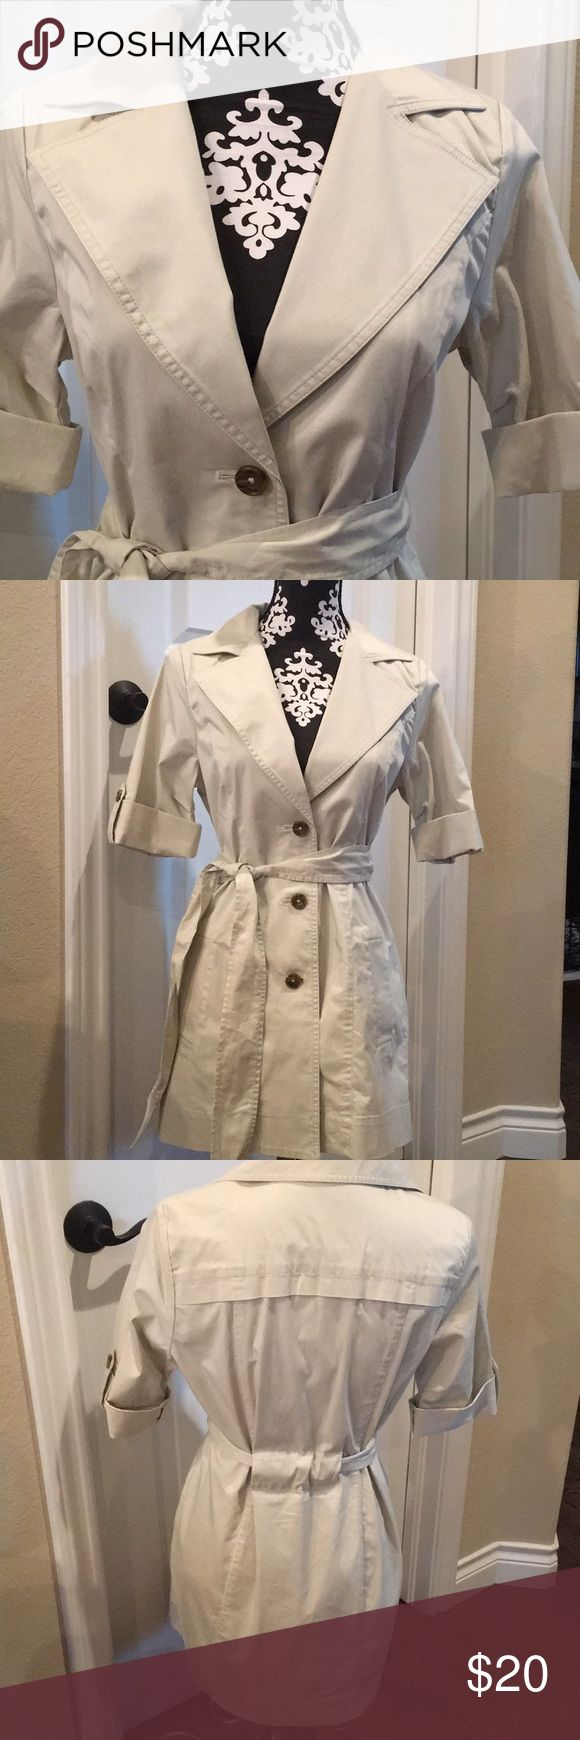 Cabi 3/4 length lightweight trench 🧥 Cabi brand  3/4 length lightweights trench coat  Soft cream color  So many ways to pair this.  Jeans, skirts ,Dress pants.  Leggings 3/4 length sleeves  Excellent condition  No dirt stains on markings Size 2 CAbi Jackets & Coats Trench Coats